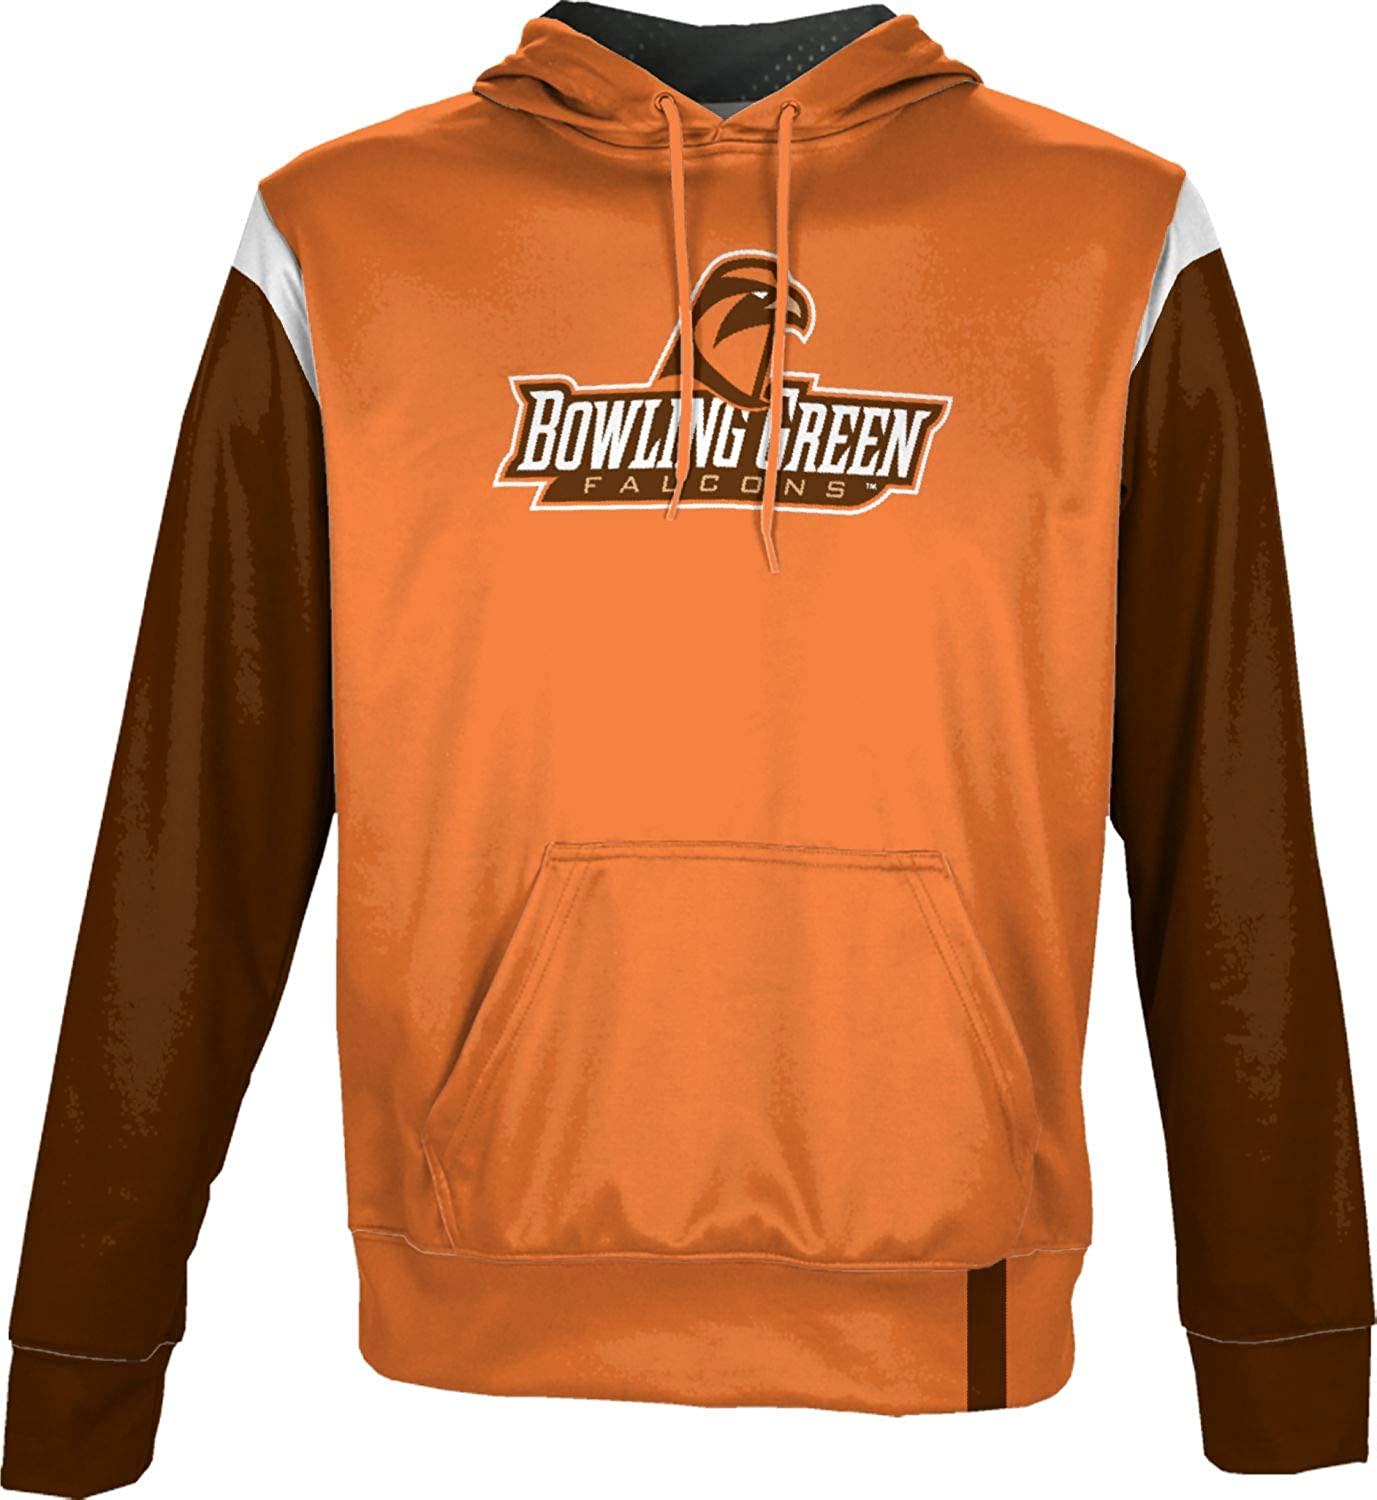 640ebabeeba ProSphere Bowling Green State University Men s Pullover Hoodie - Tailgate  at Amazon Men s Clothing store